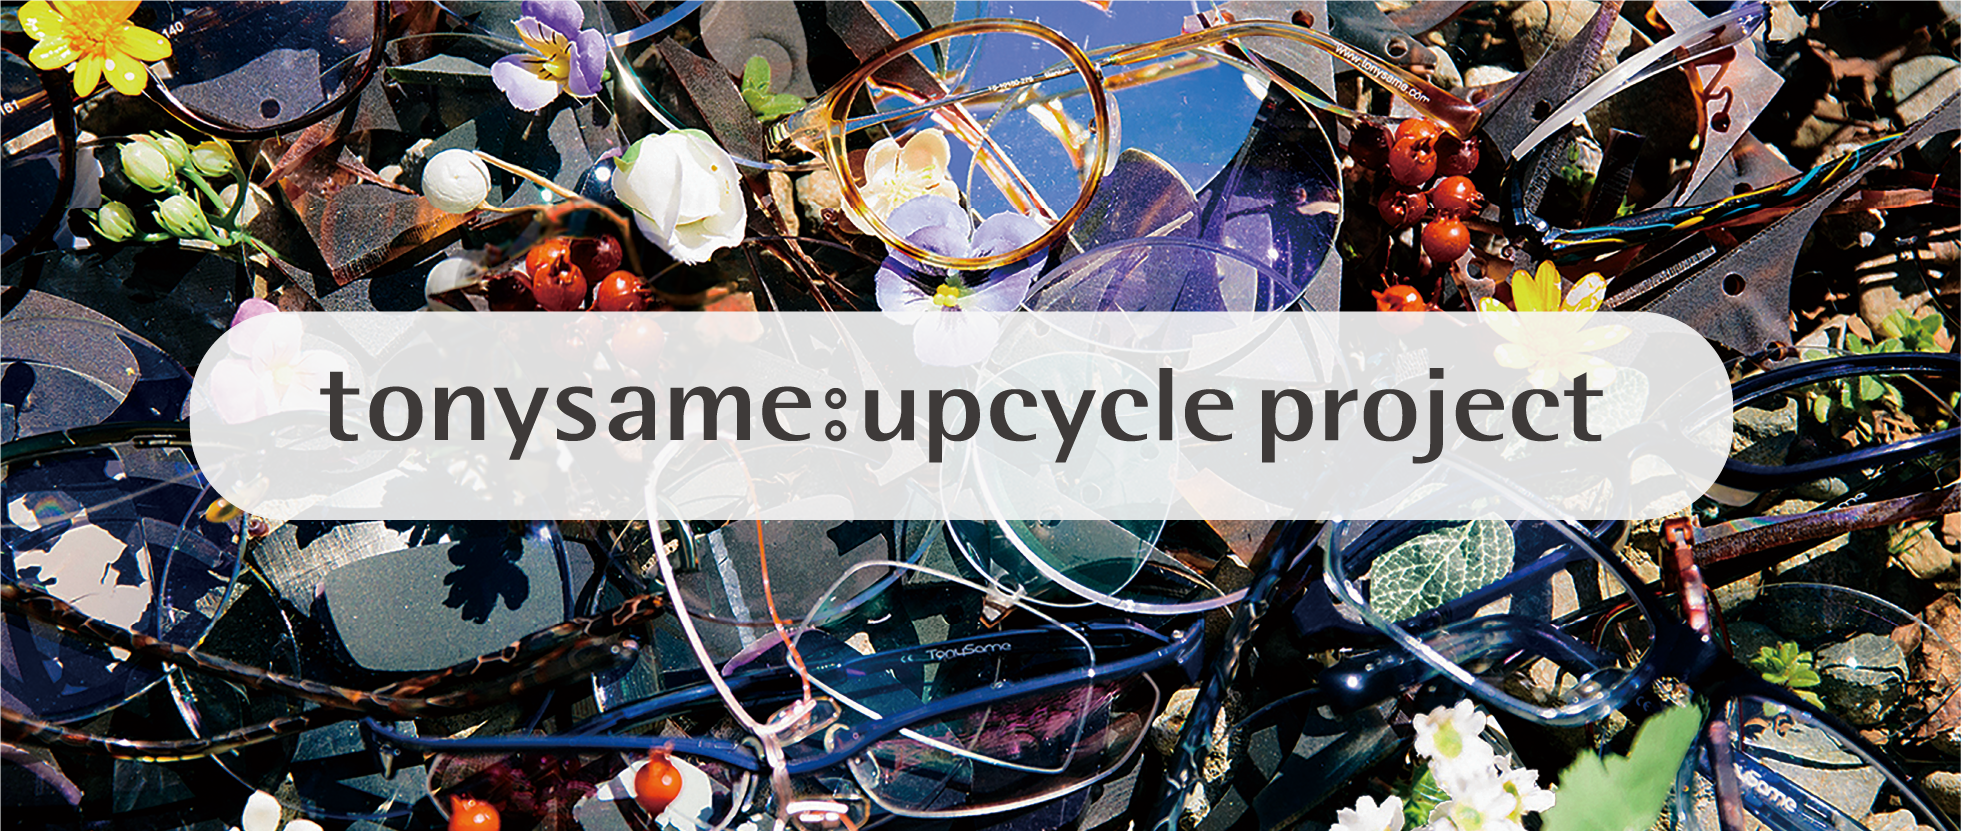 tonysame: upcycle project